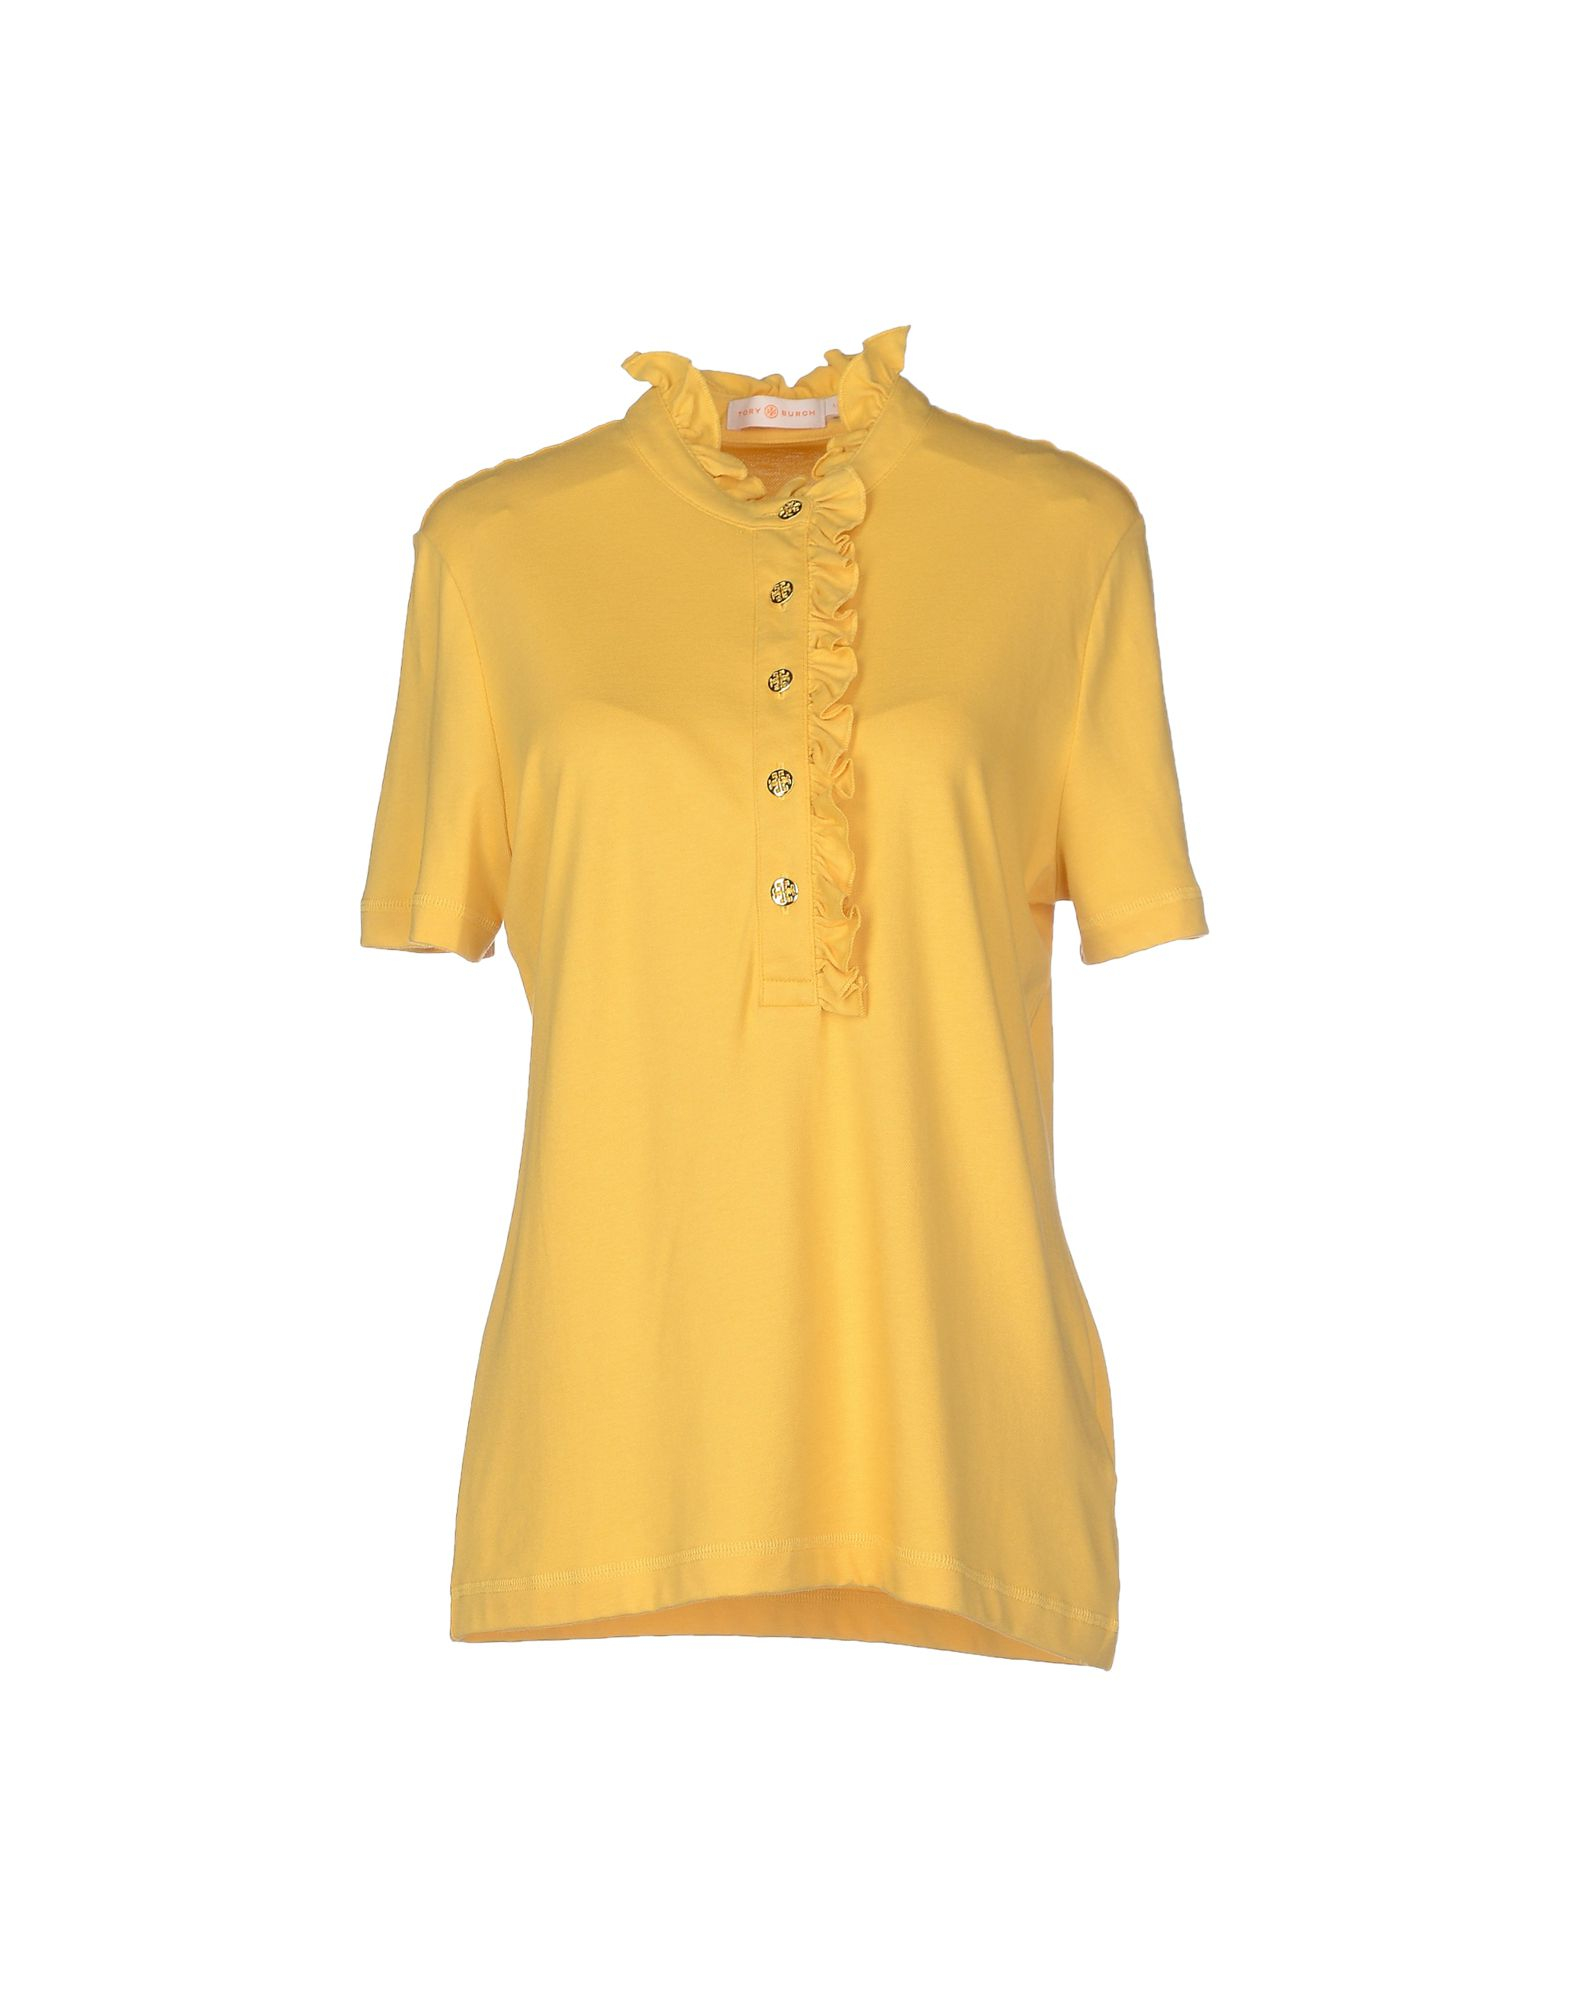 Tory Burch Polo Shirt In Yellow Lyst